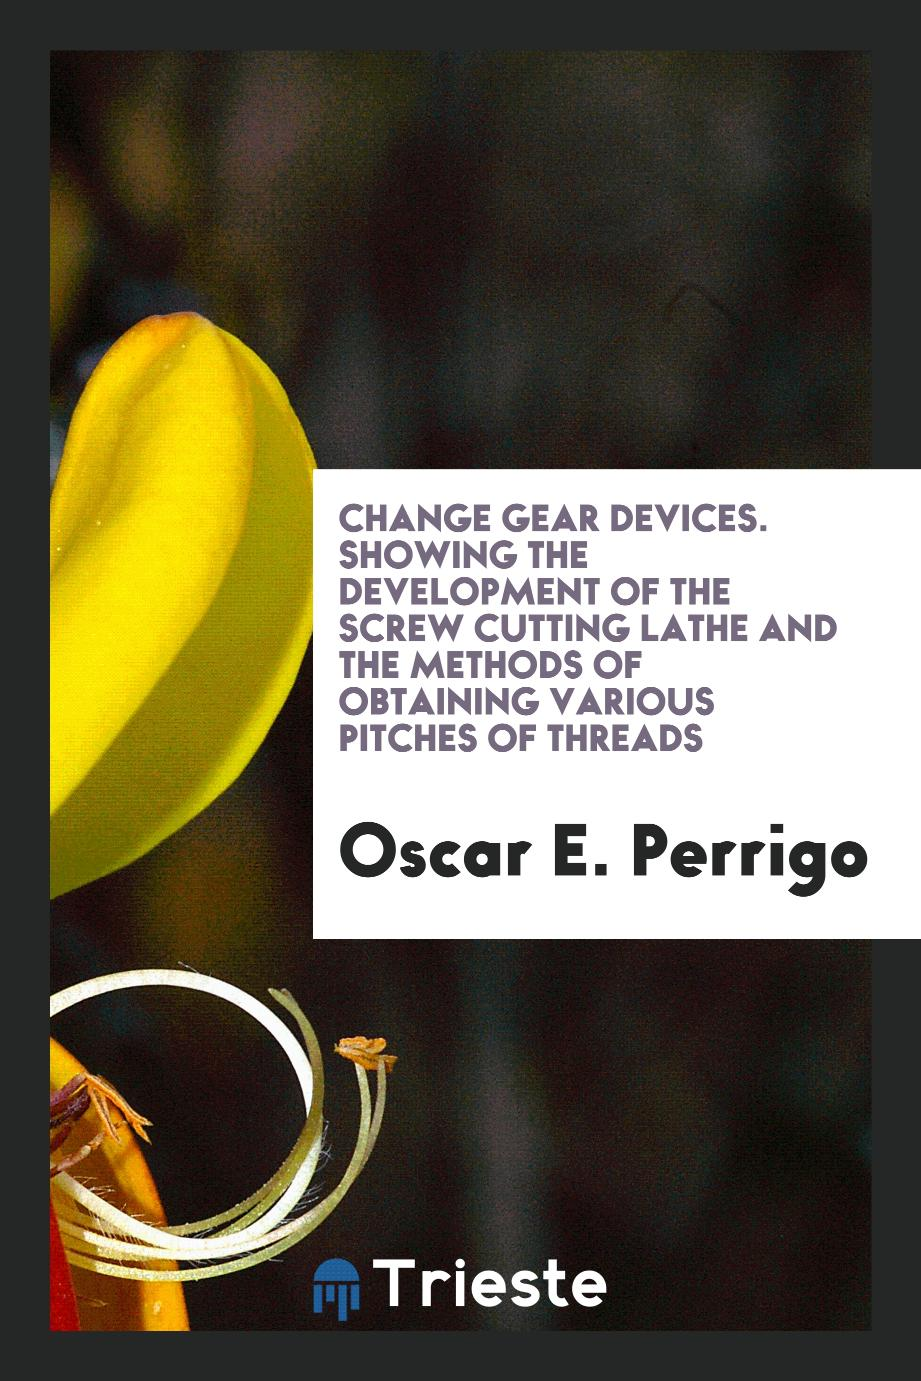 Change Gear Devices. Showing the Development of the Screw Cutting Lathe and the Methods of Obtaining Various Pitches of Threads